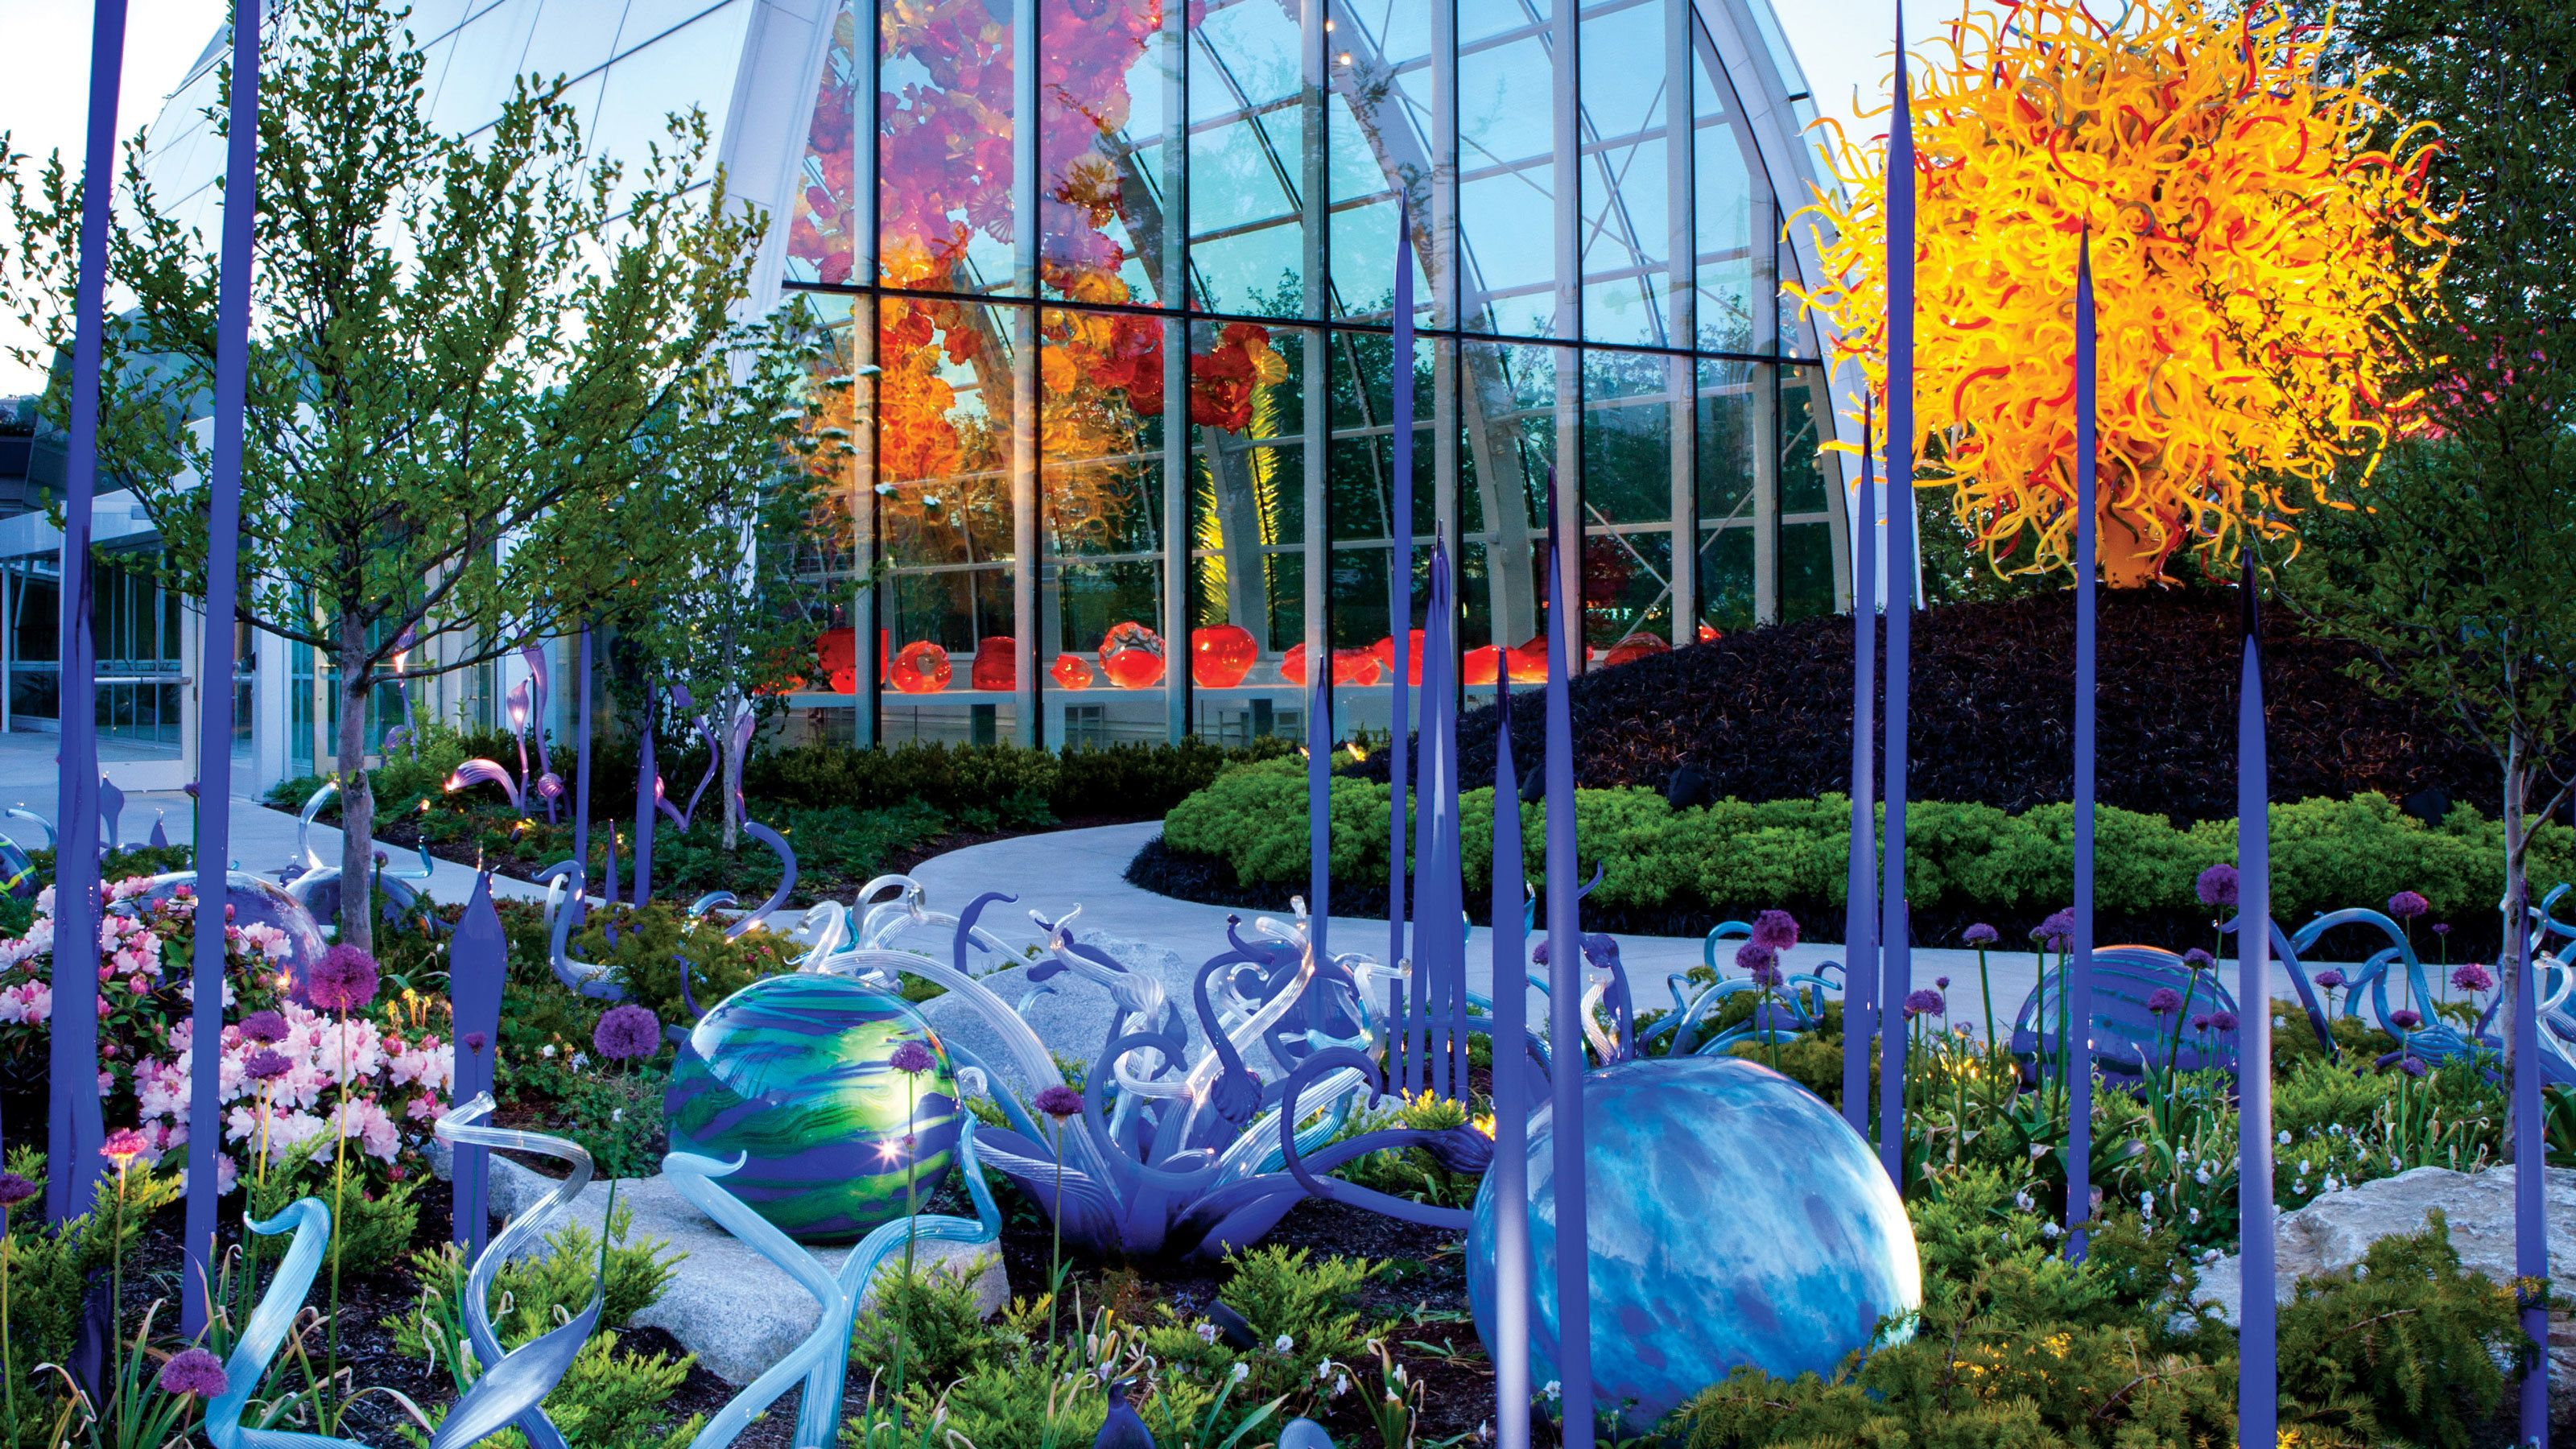 Chihuly garden and glass is a museum in the seattle center showcasing the studio glass of dale chihuly. Chihuly Garden And Glass Seattle